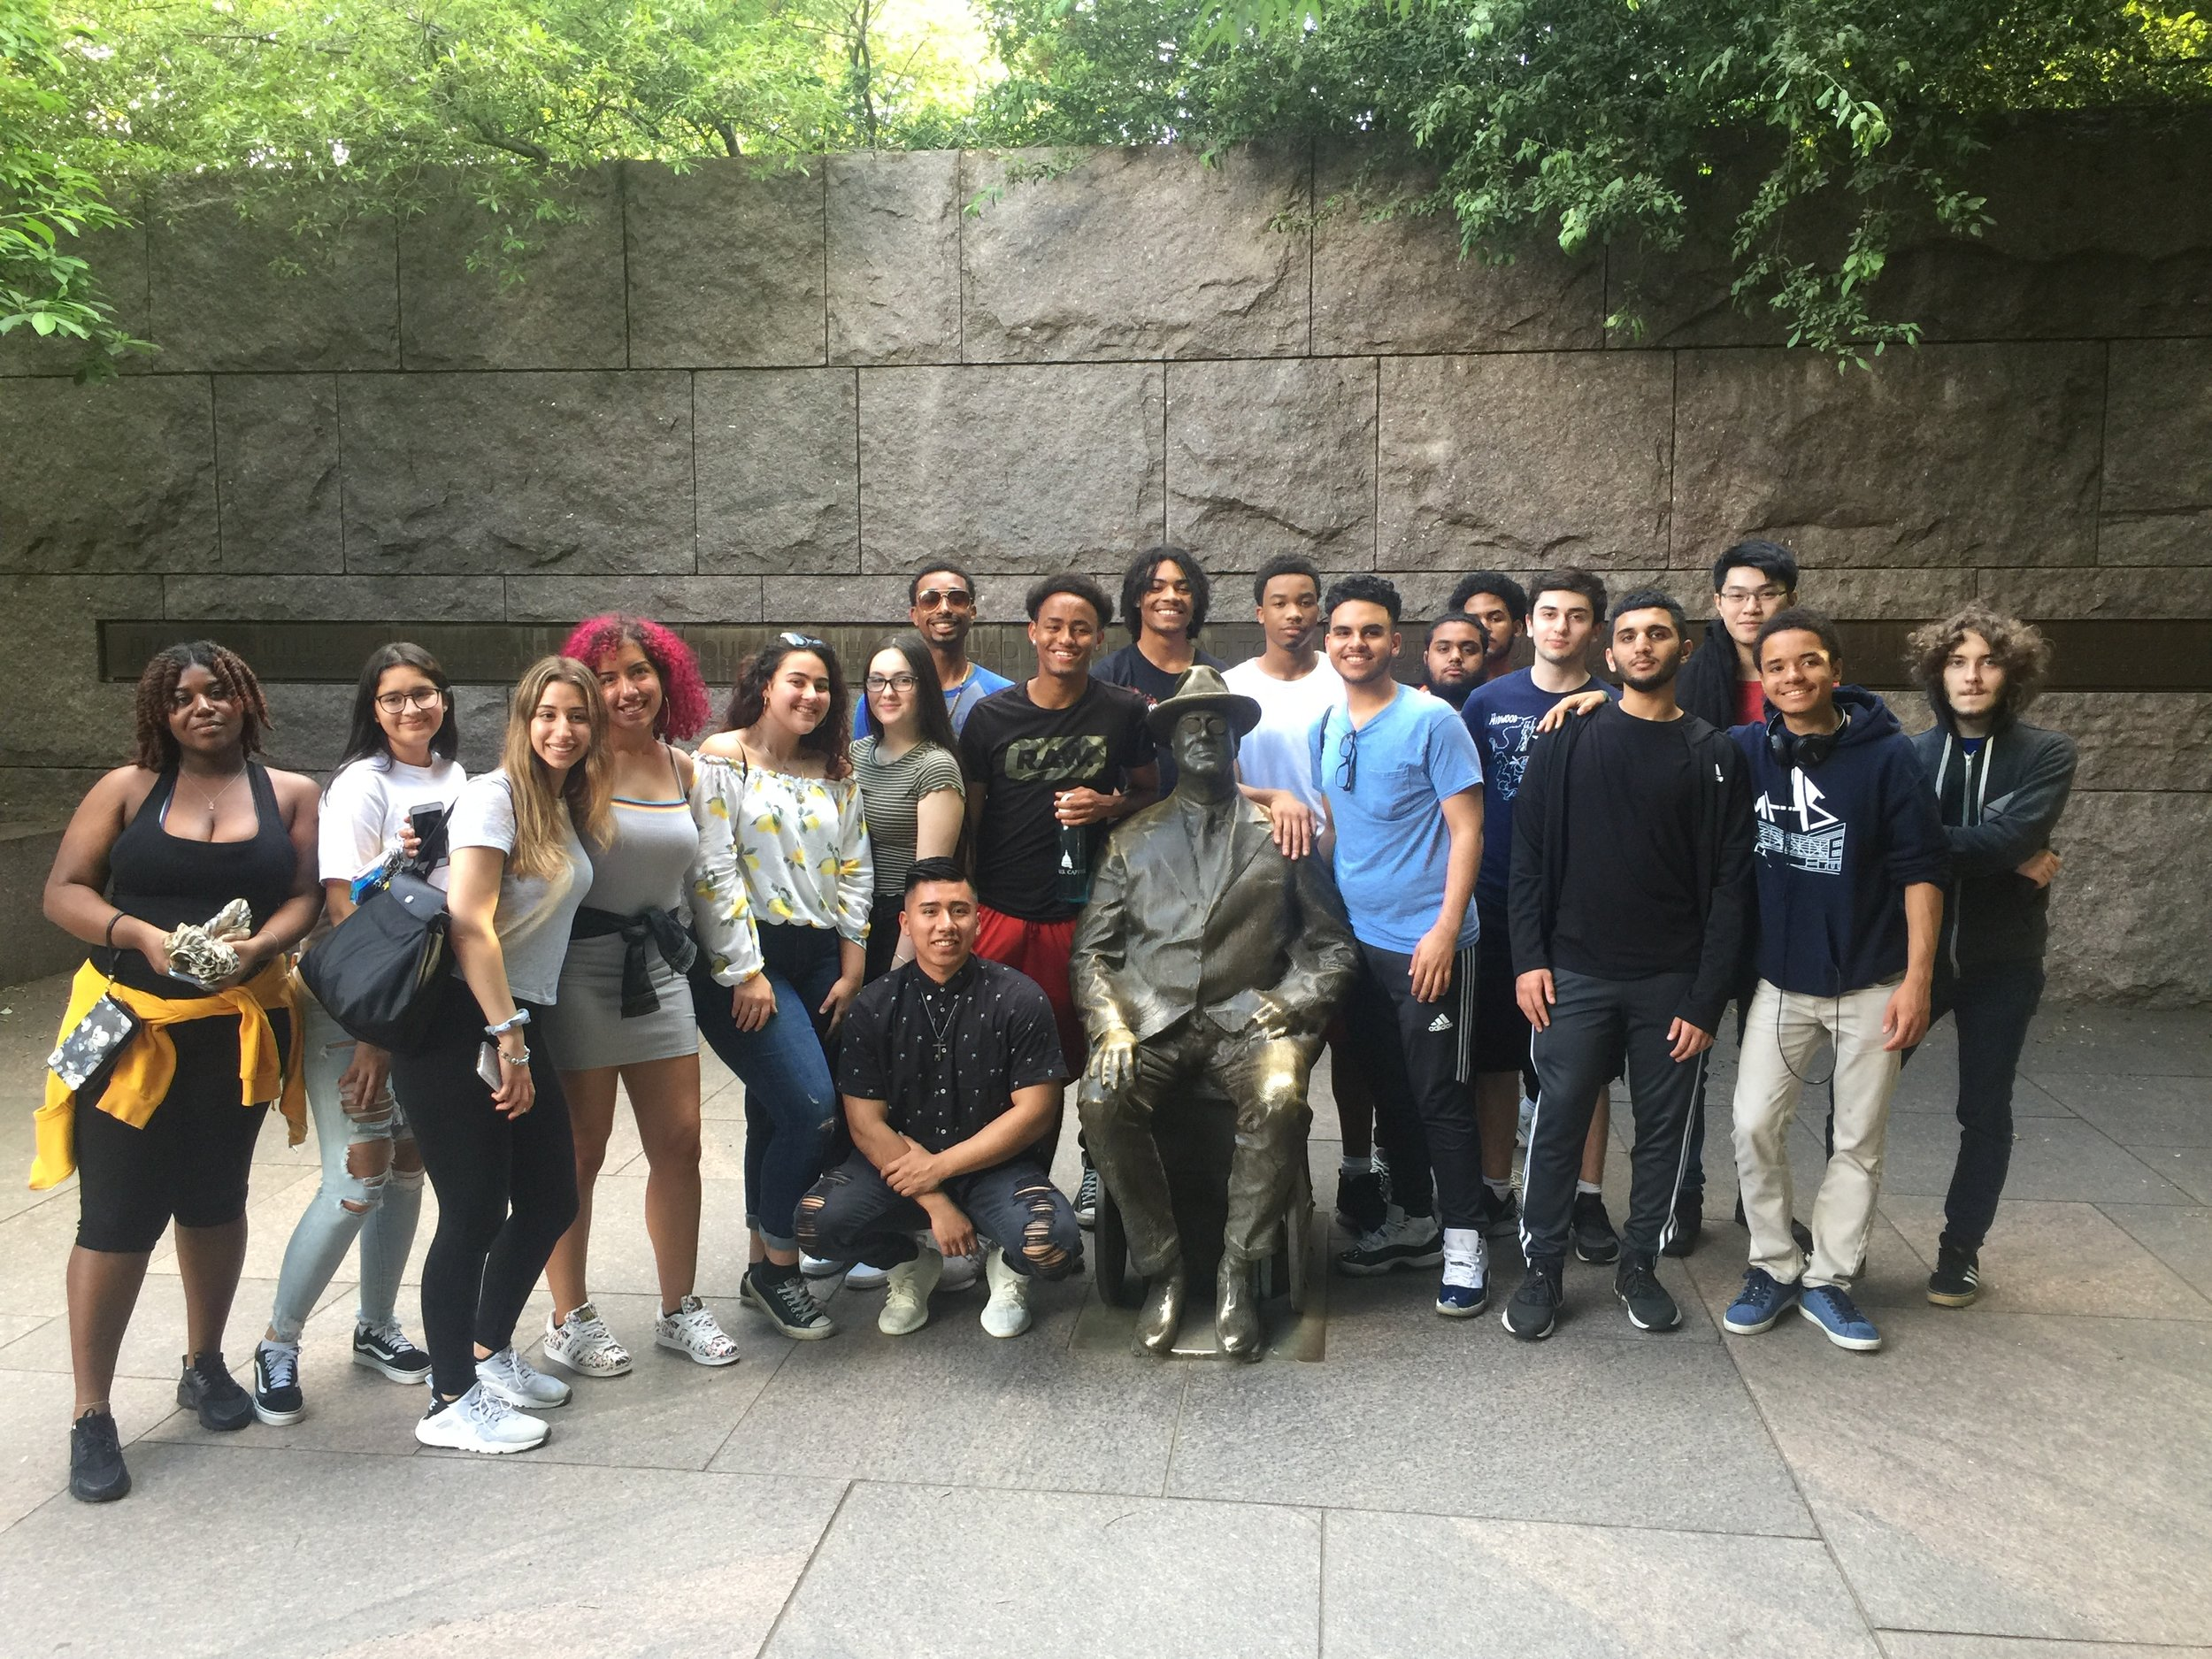 Students pose with a statue of Franklin Delano Roosevelt, who was elected four times as president despite being confined to a wheelchair.  Photo courtesy of Aaron Pimentel